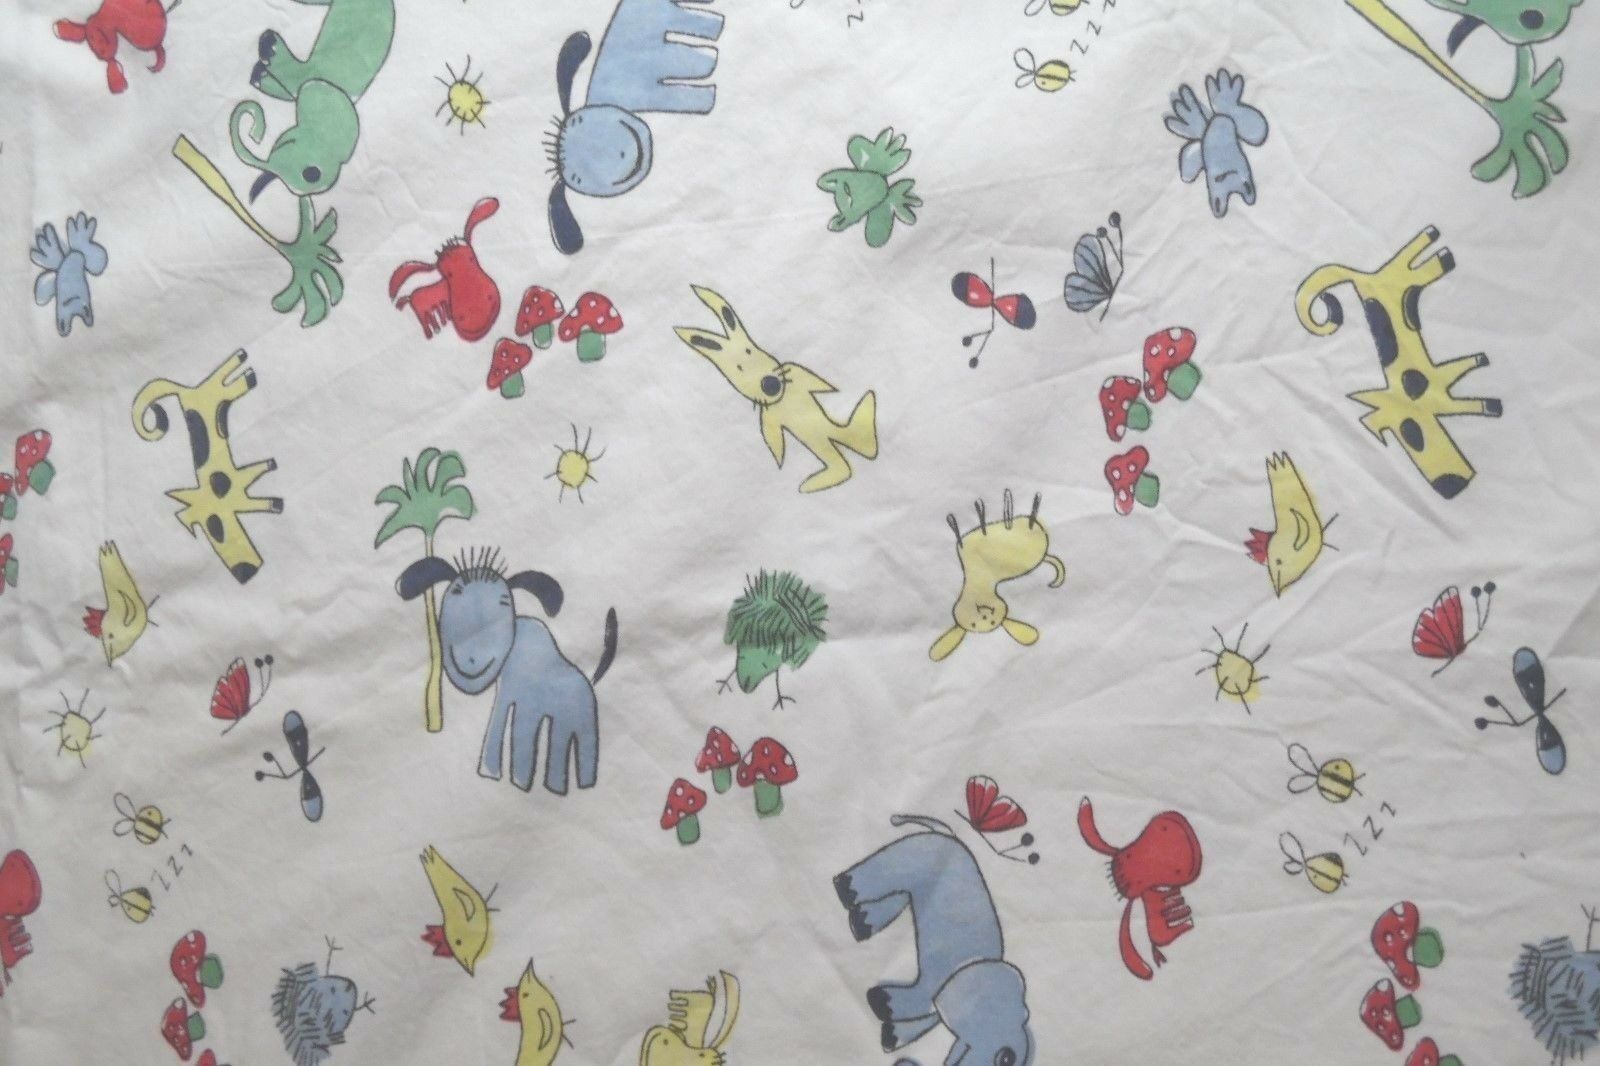 Vintage Pottery Barn Kids Shower Curtain 1 Of 8Only Available